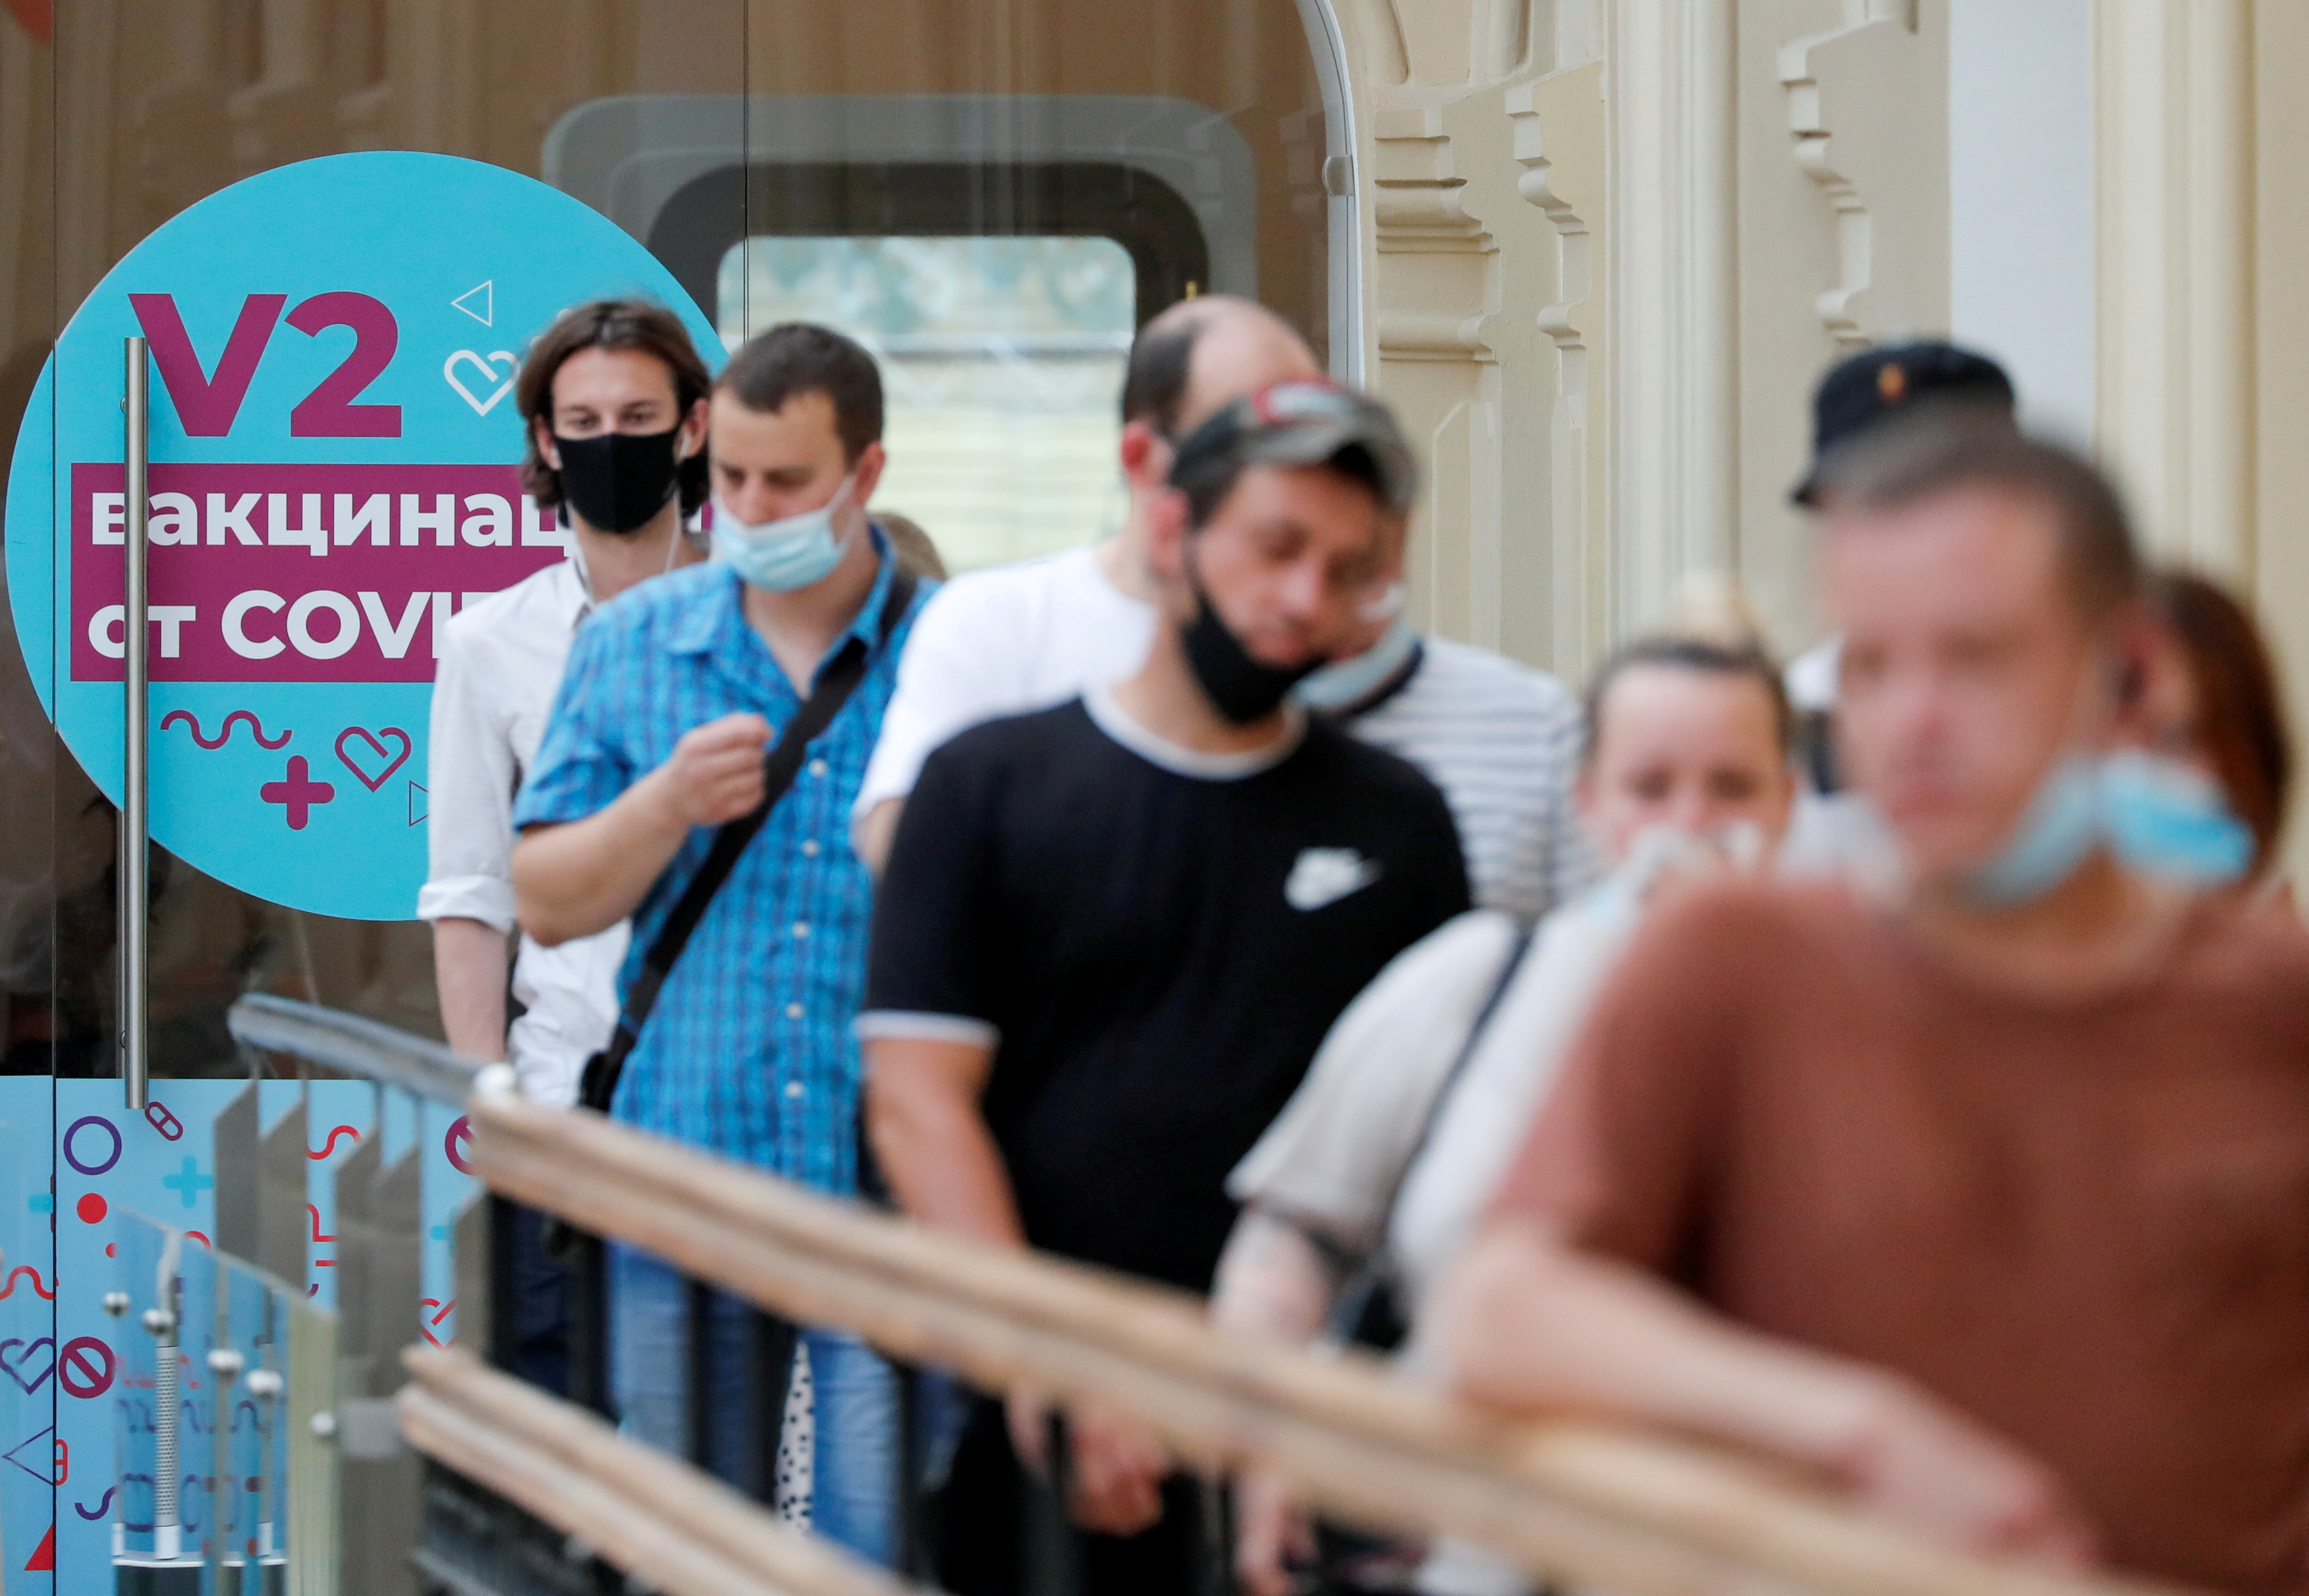 People line up to receive vaccine against the coronavirus disease (COVID-19) outside a vaccination centre in the State Department Store, GUM, in central Moscow, Russia June 25, 2021. REUTERS/Shamil Zhumatov